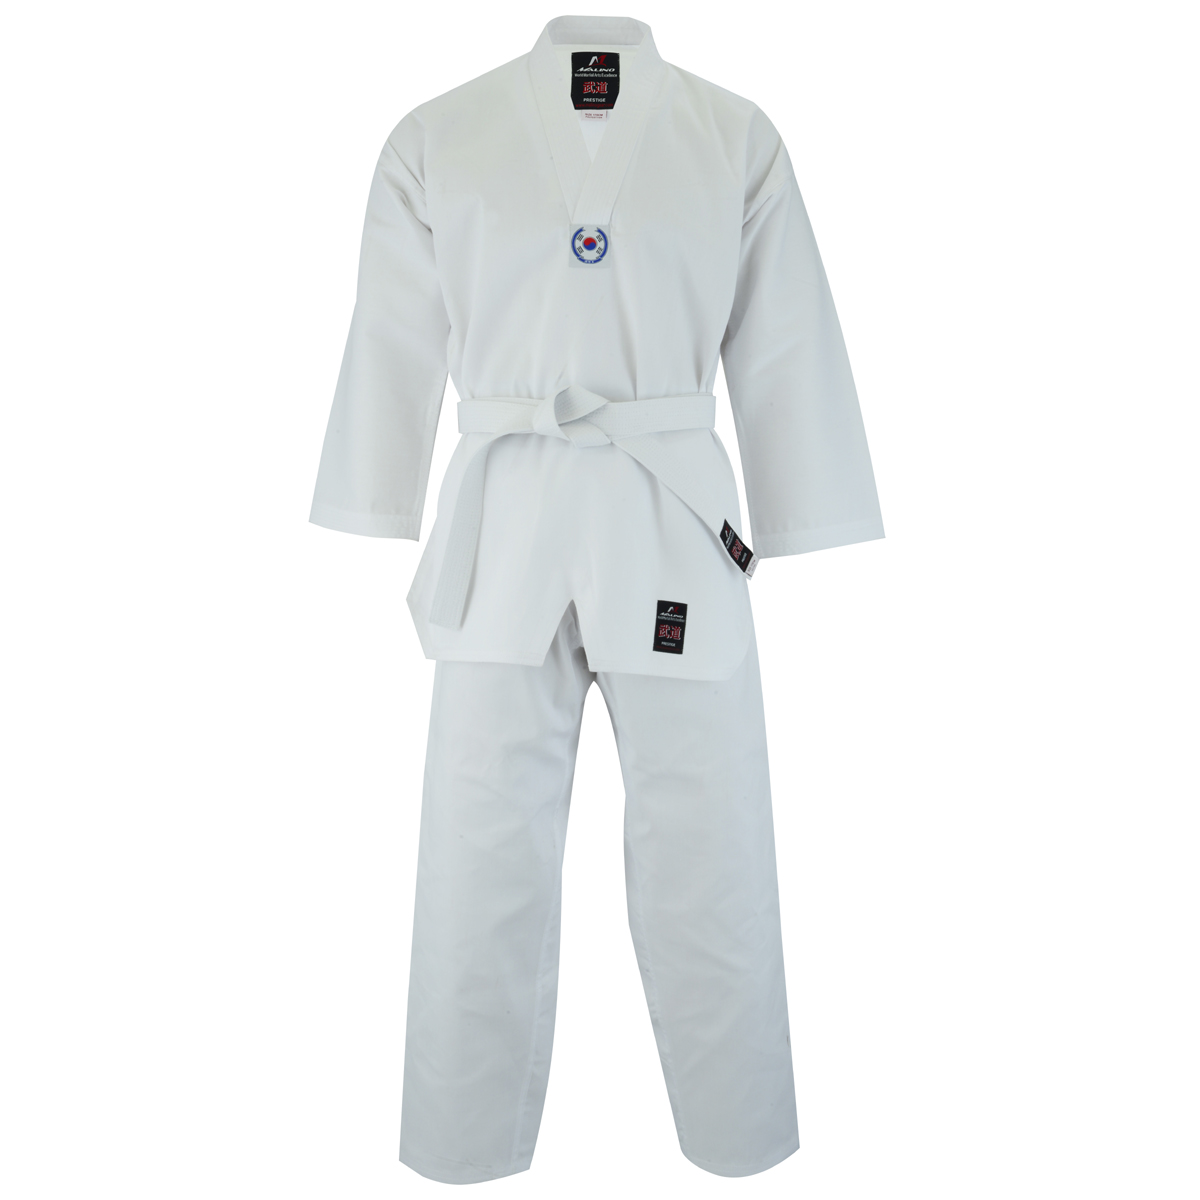 Malino Kids V-Neck Taekwondo Suit White- 7oz